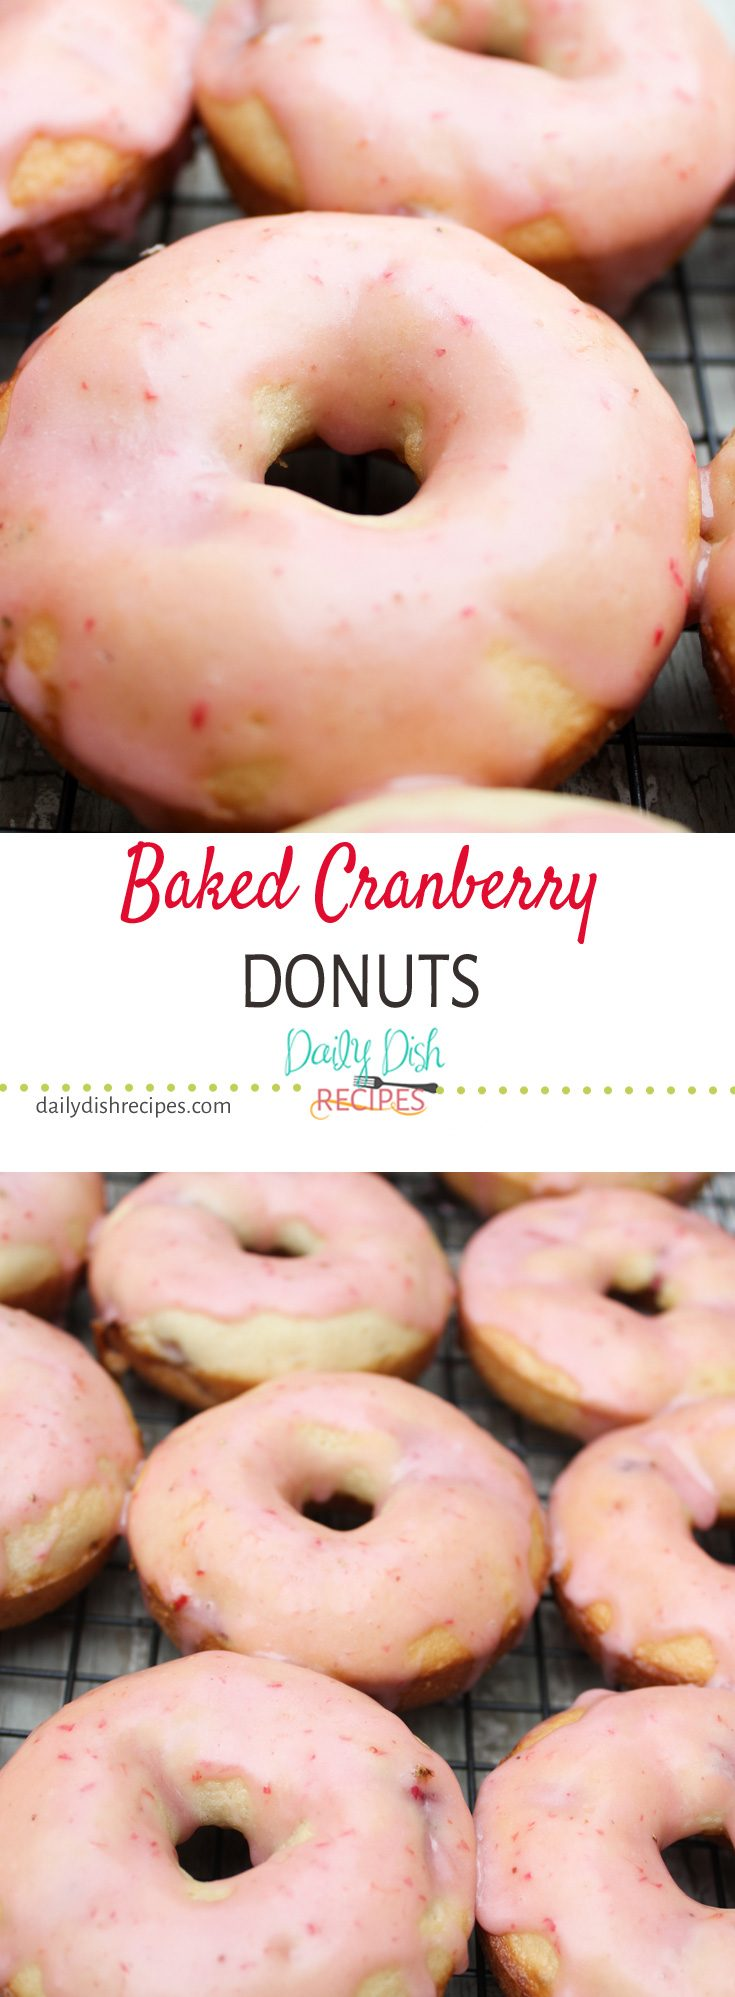 A wonderfully light, sweet cranberry flavor makes these perfect for a holiday brunch!